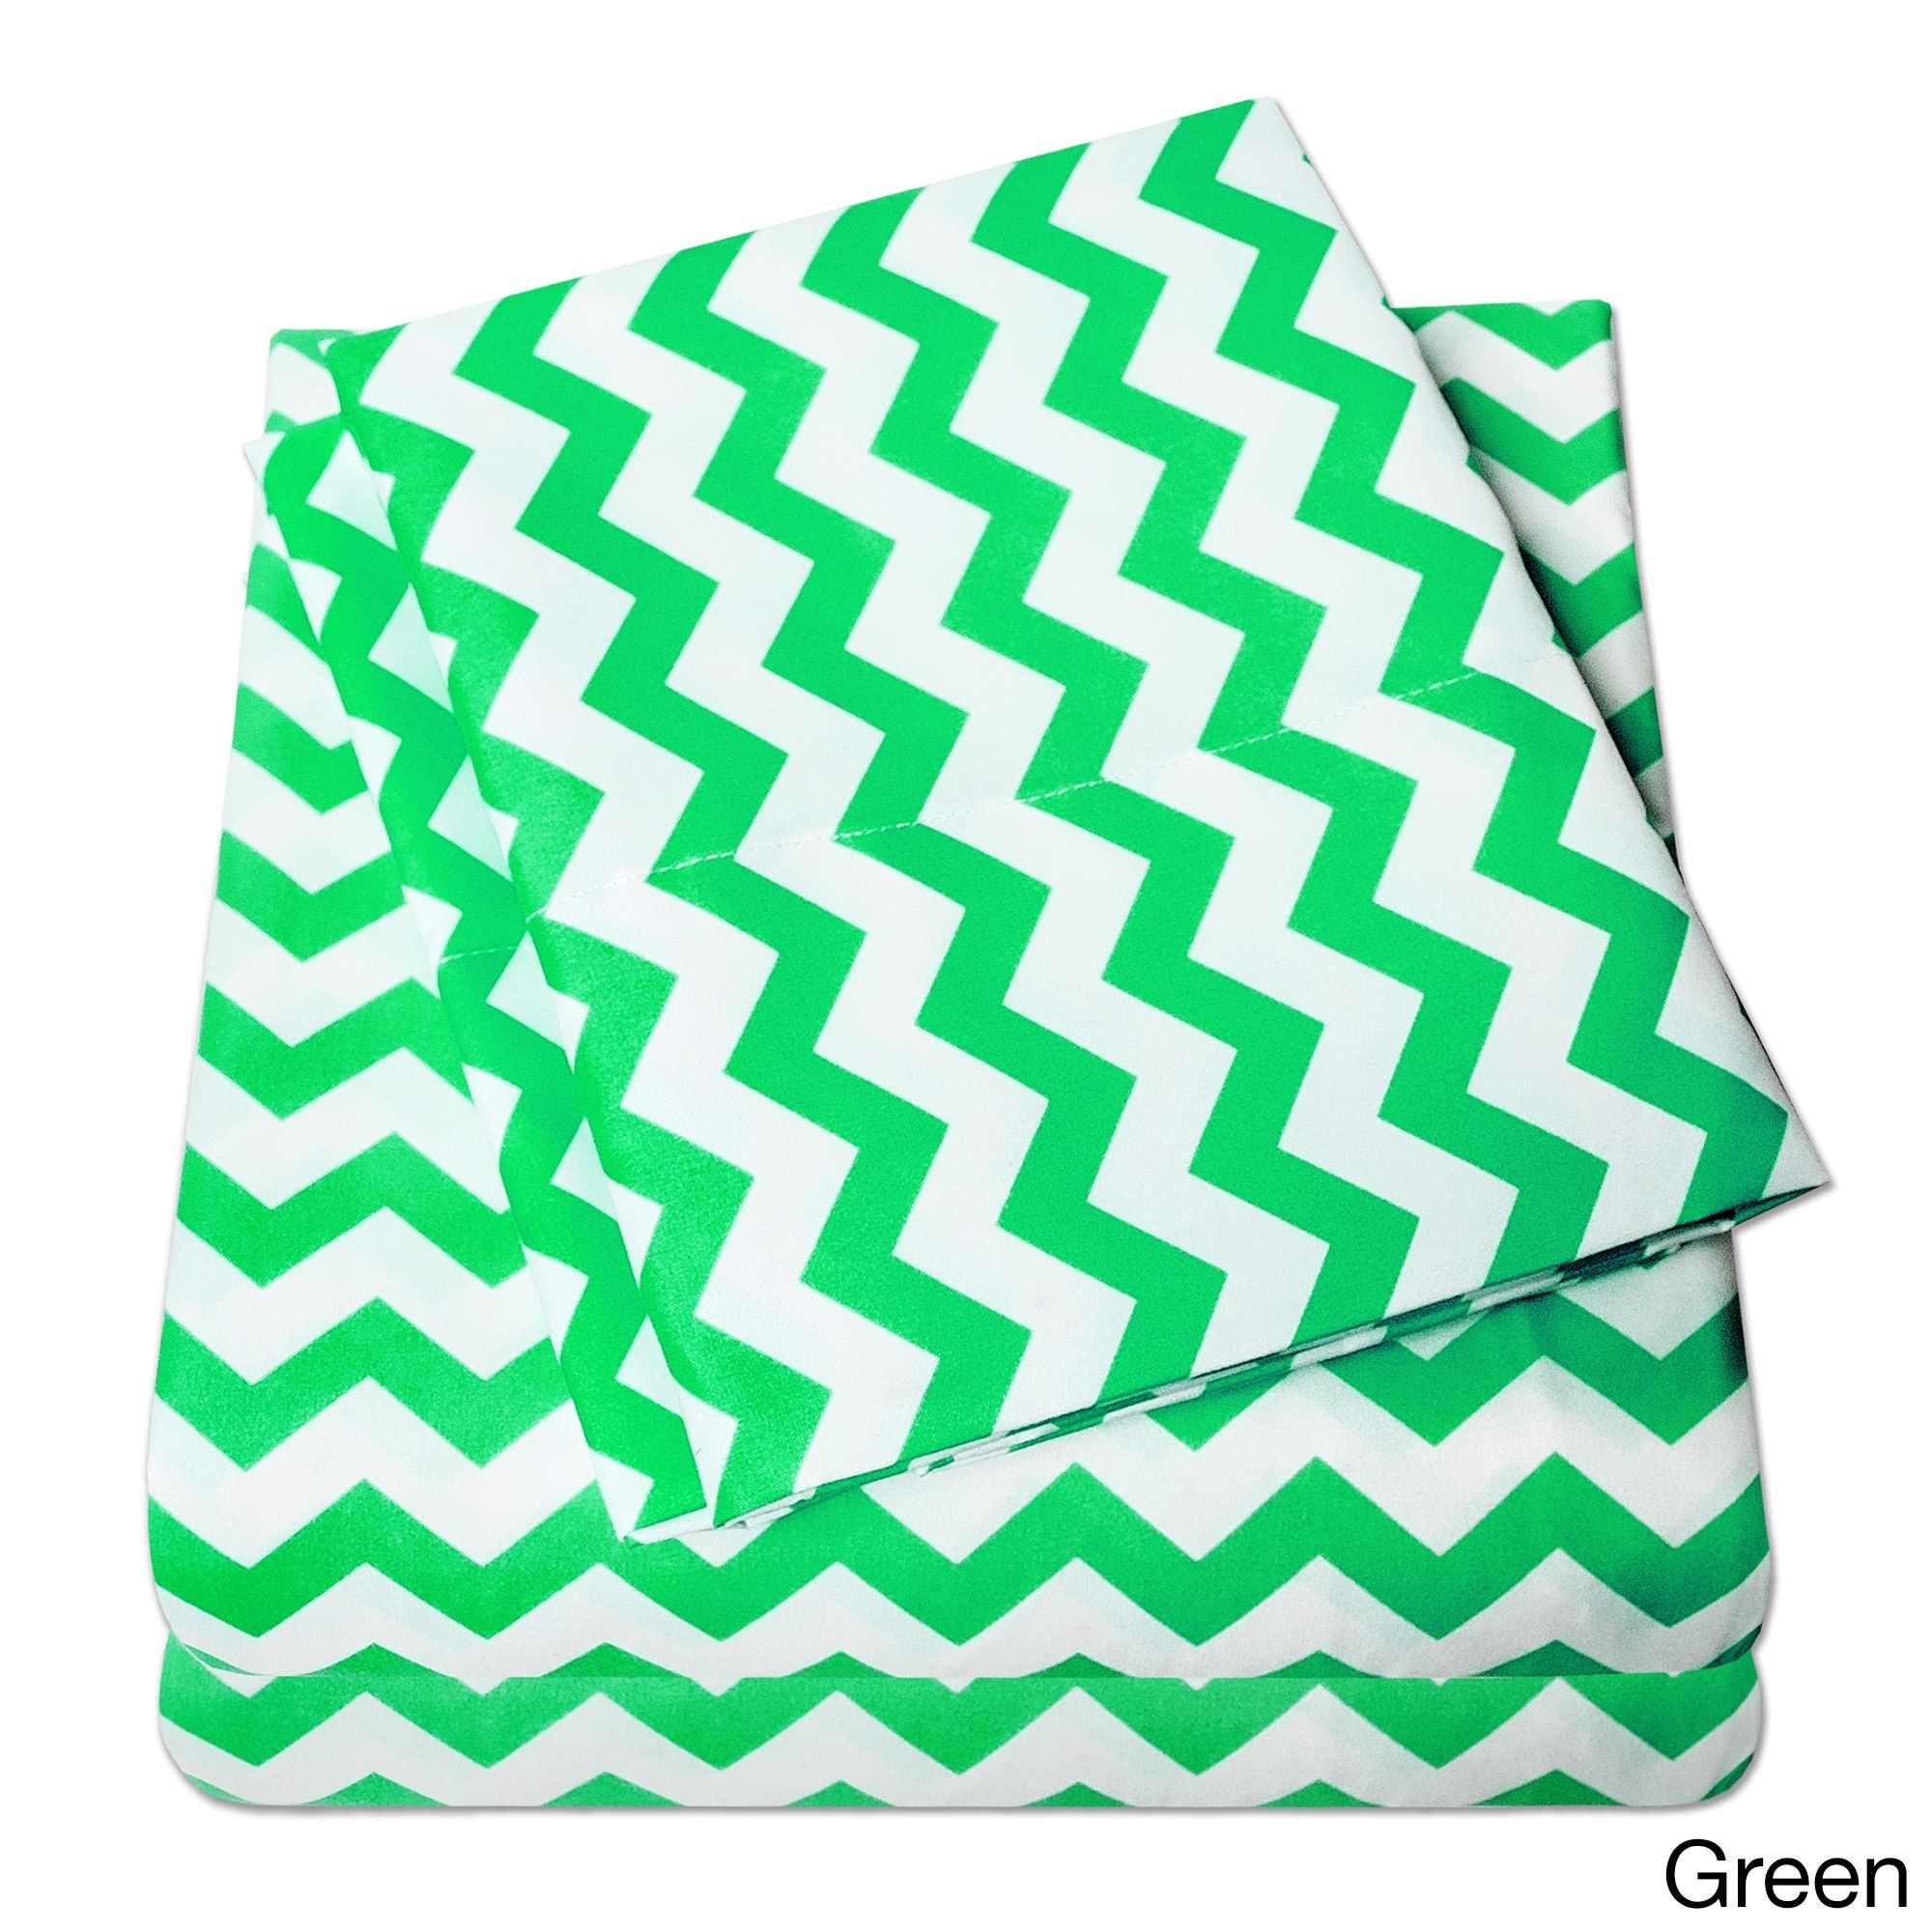 N Incredibly Soft 4 Piece Chevron Sheet Set